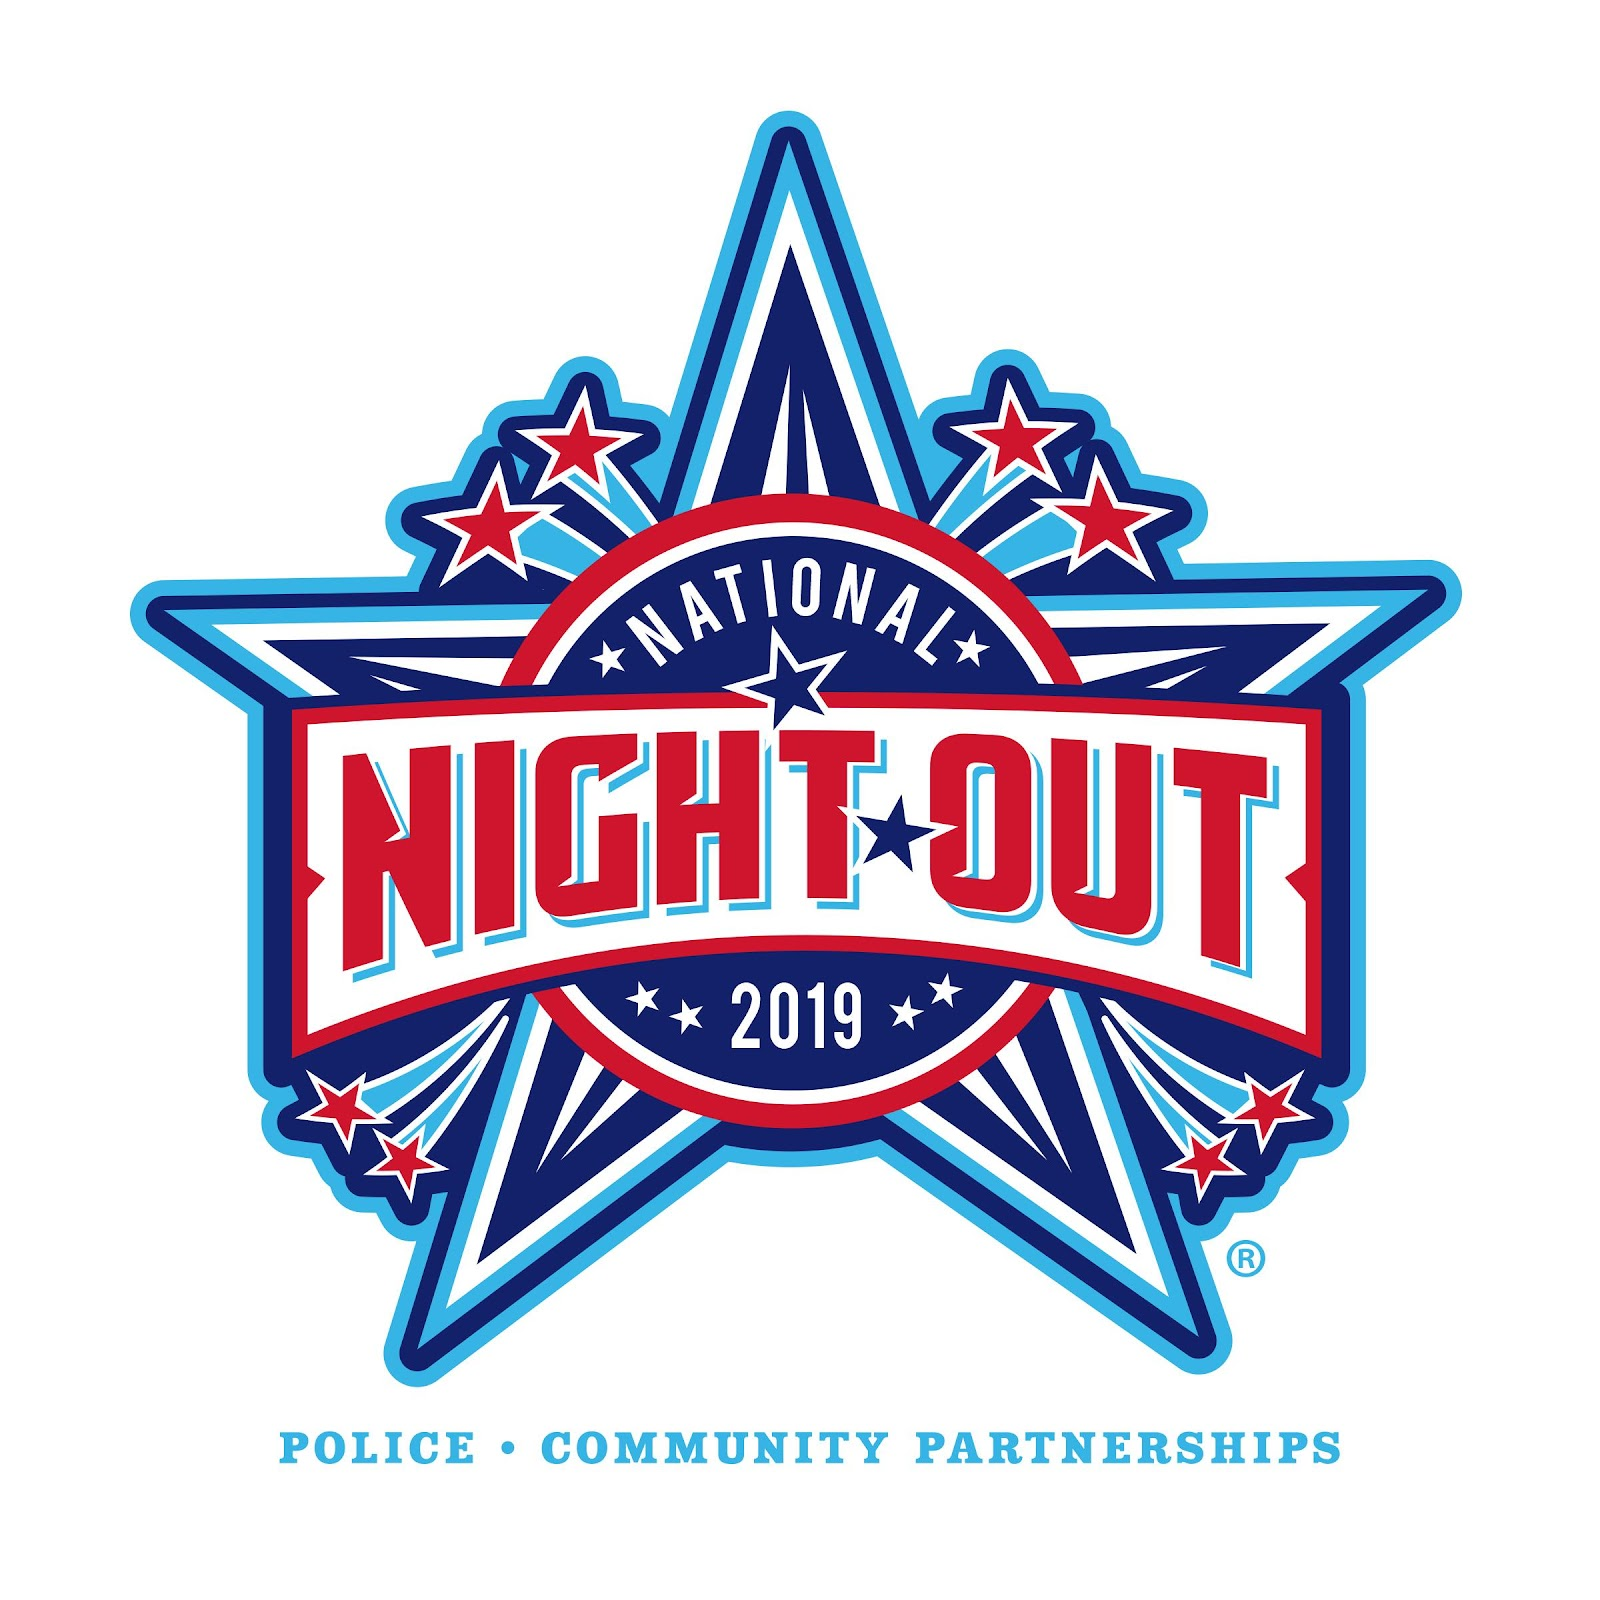 ational Night Out 2019 Image